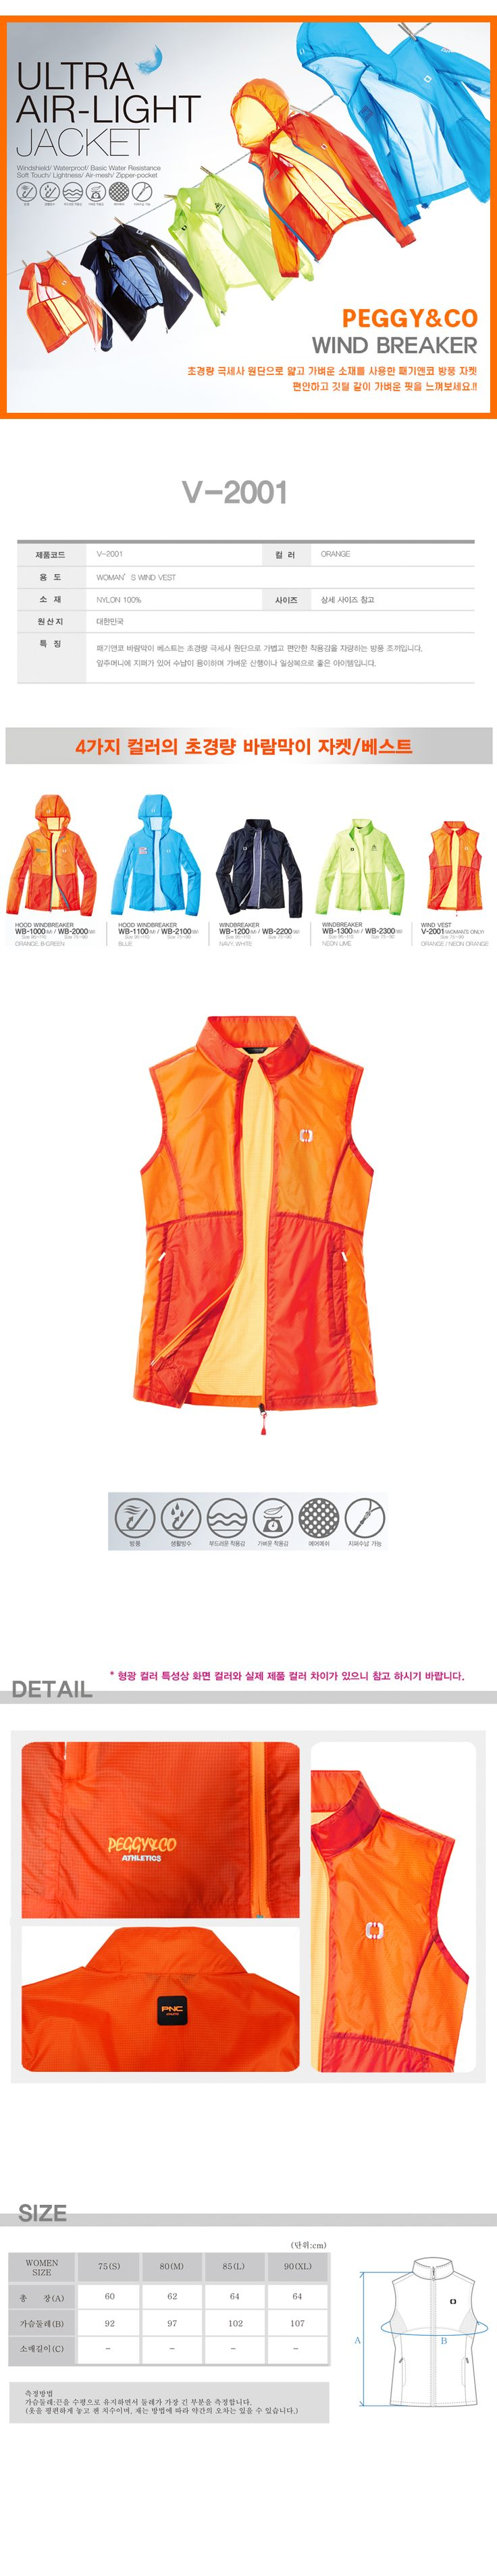 best jacket images on pinterest athletic wear content and jackets